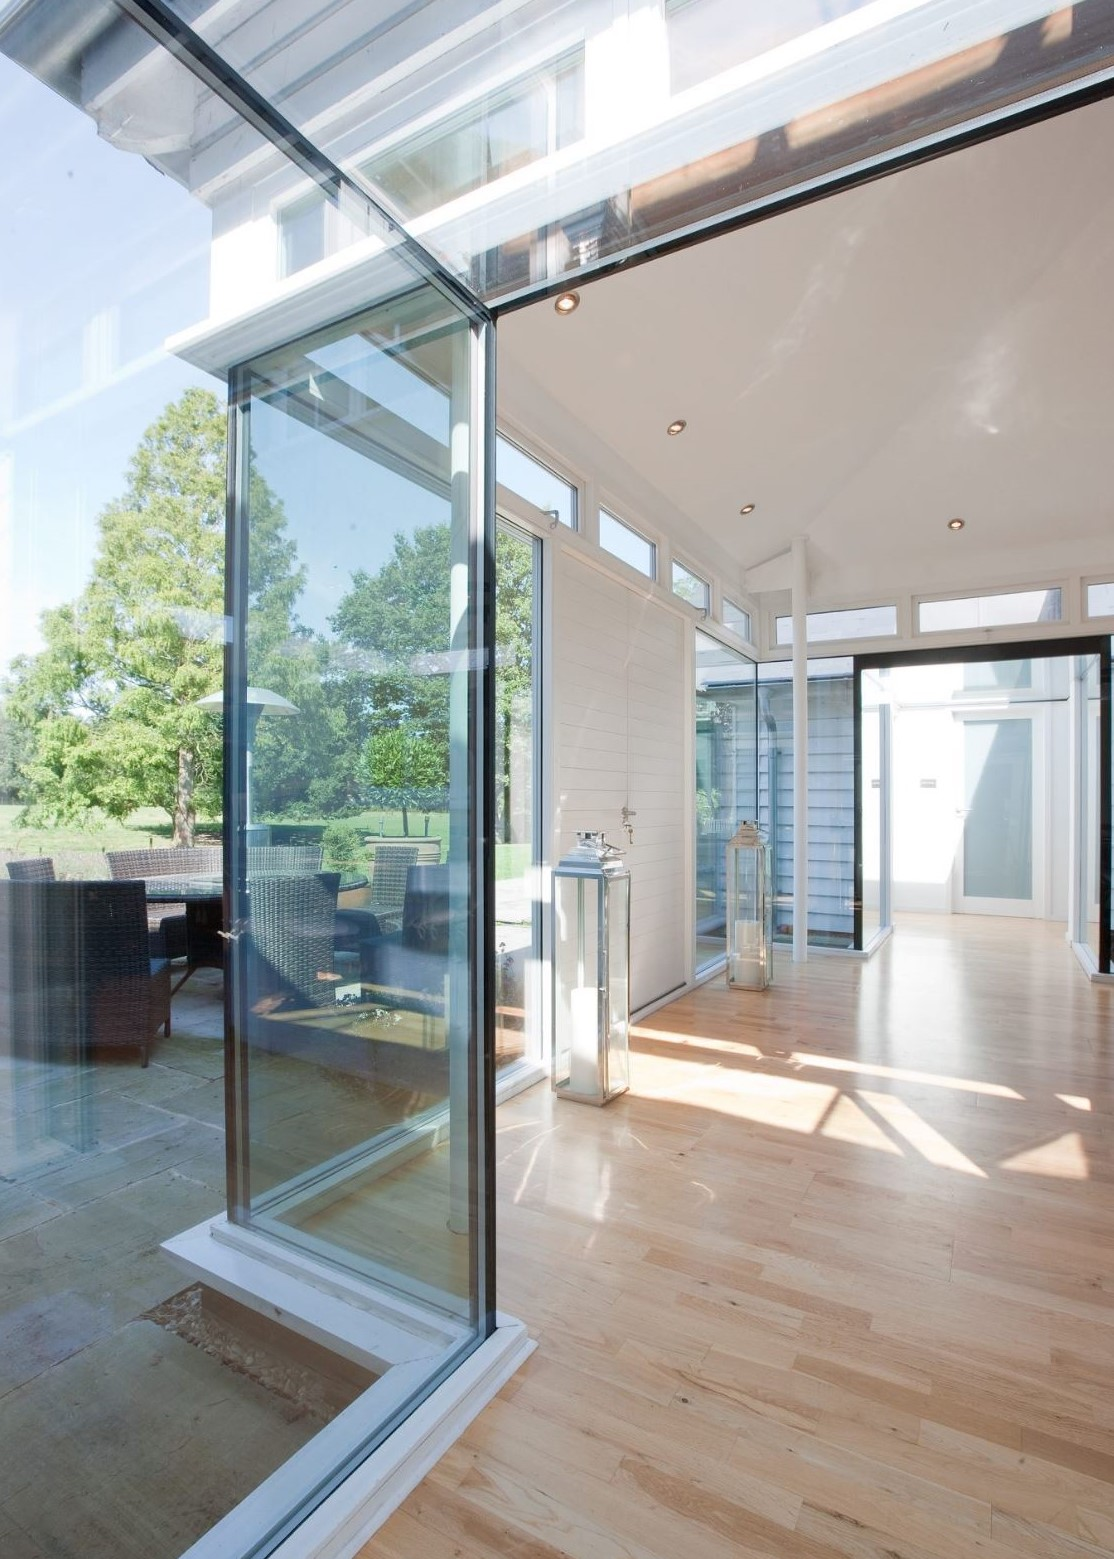 Frameless structural glazing combined with large glass sliding doors